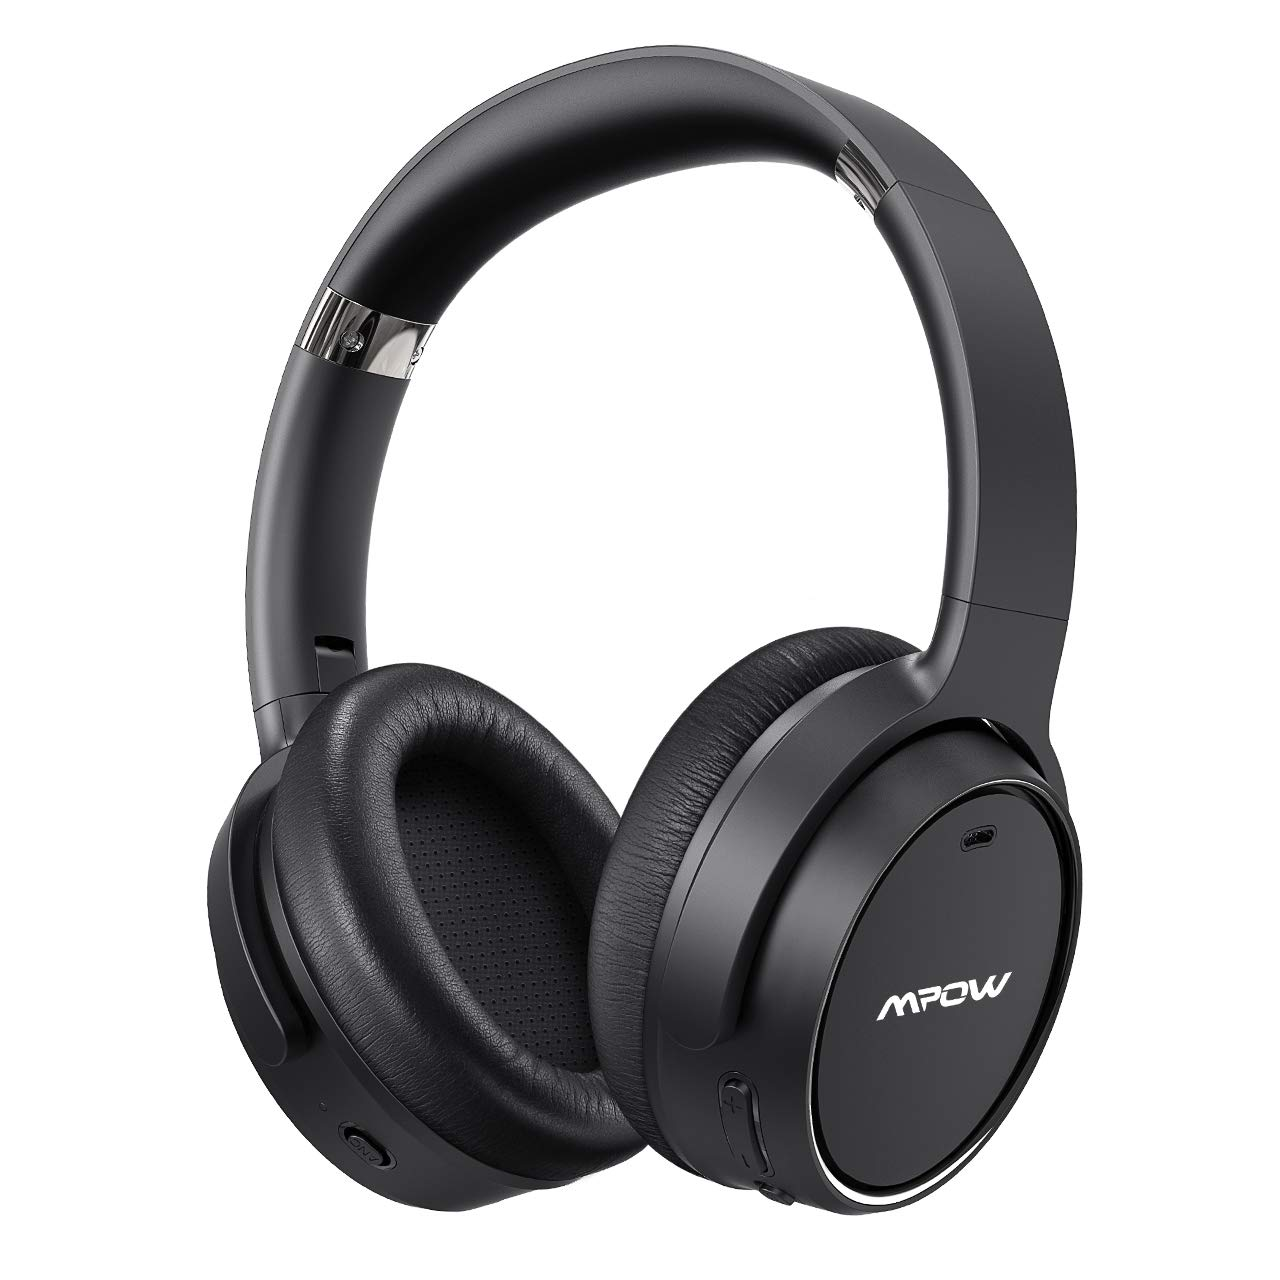 Mpow H19 Hybrid Noise Cancelling Headphones, [Upgraded] Bluetooth 5.0 Over Ear Wireless Headphones with 30H Playtime, Deep Bass, CVC 6.0 Microphone, ANC Headphones for Travel Work by Mpow